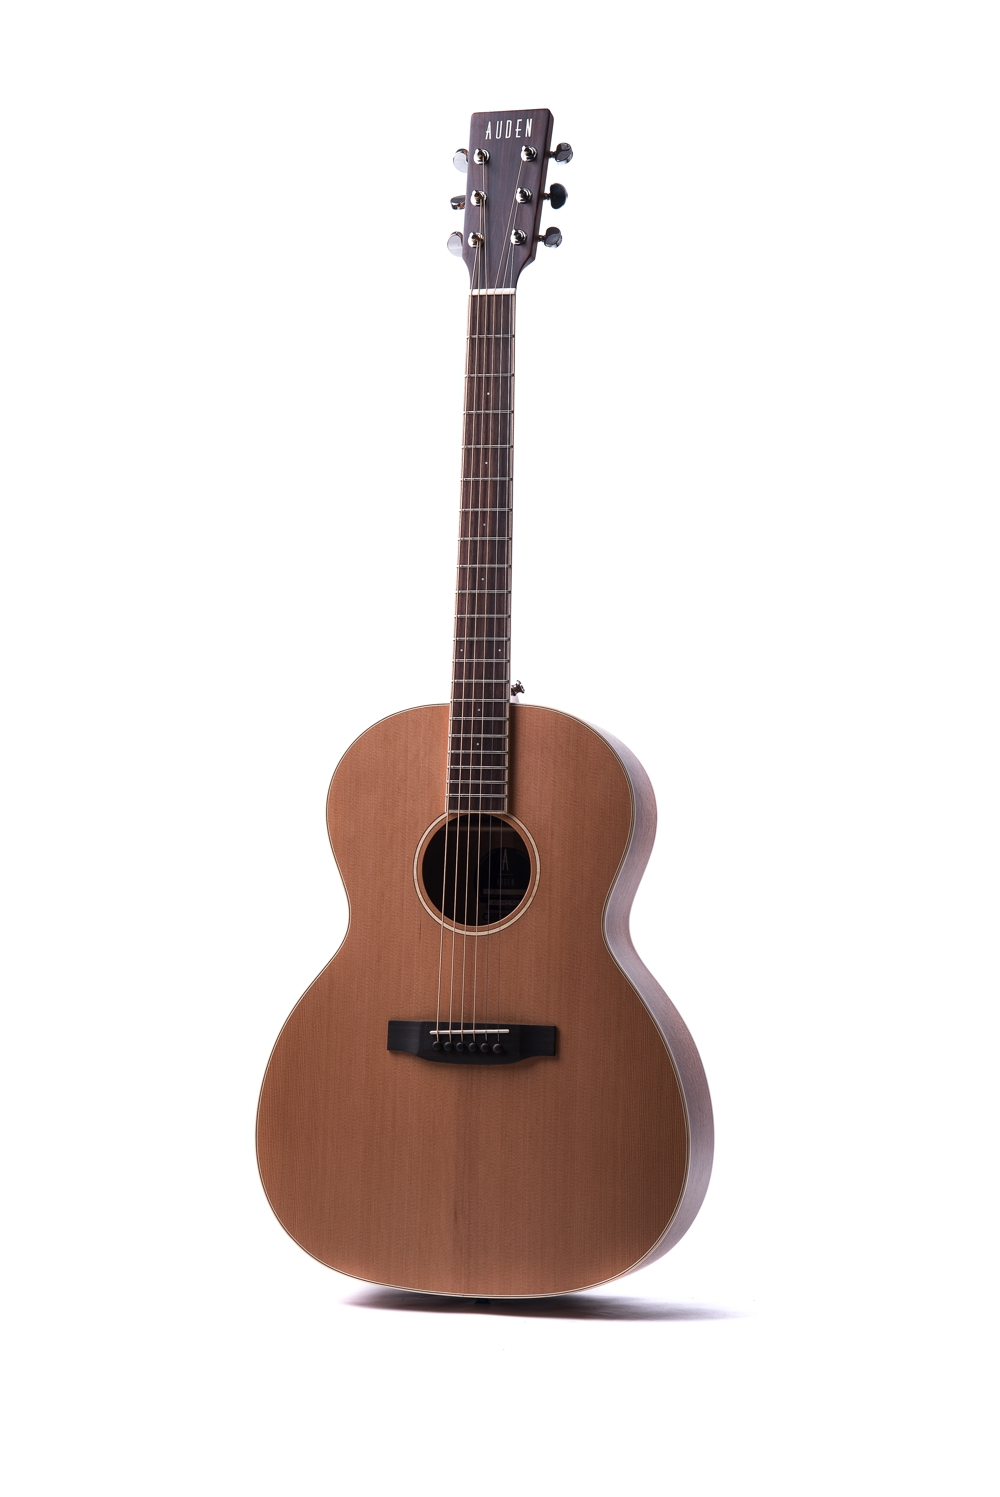 Chester Neo - acoustic guitar by Auden Guitars. Front full image.